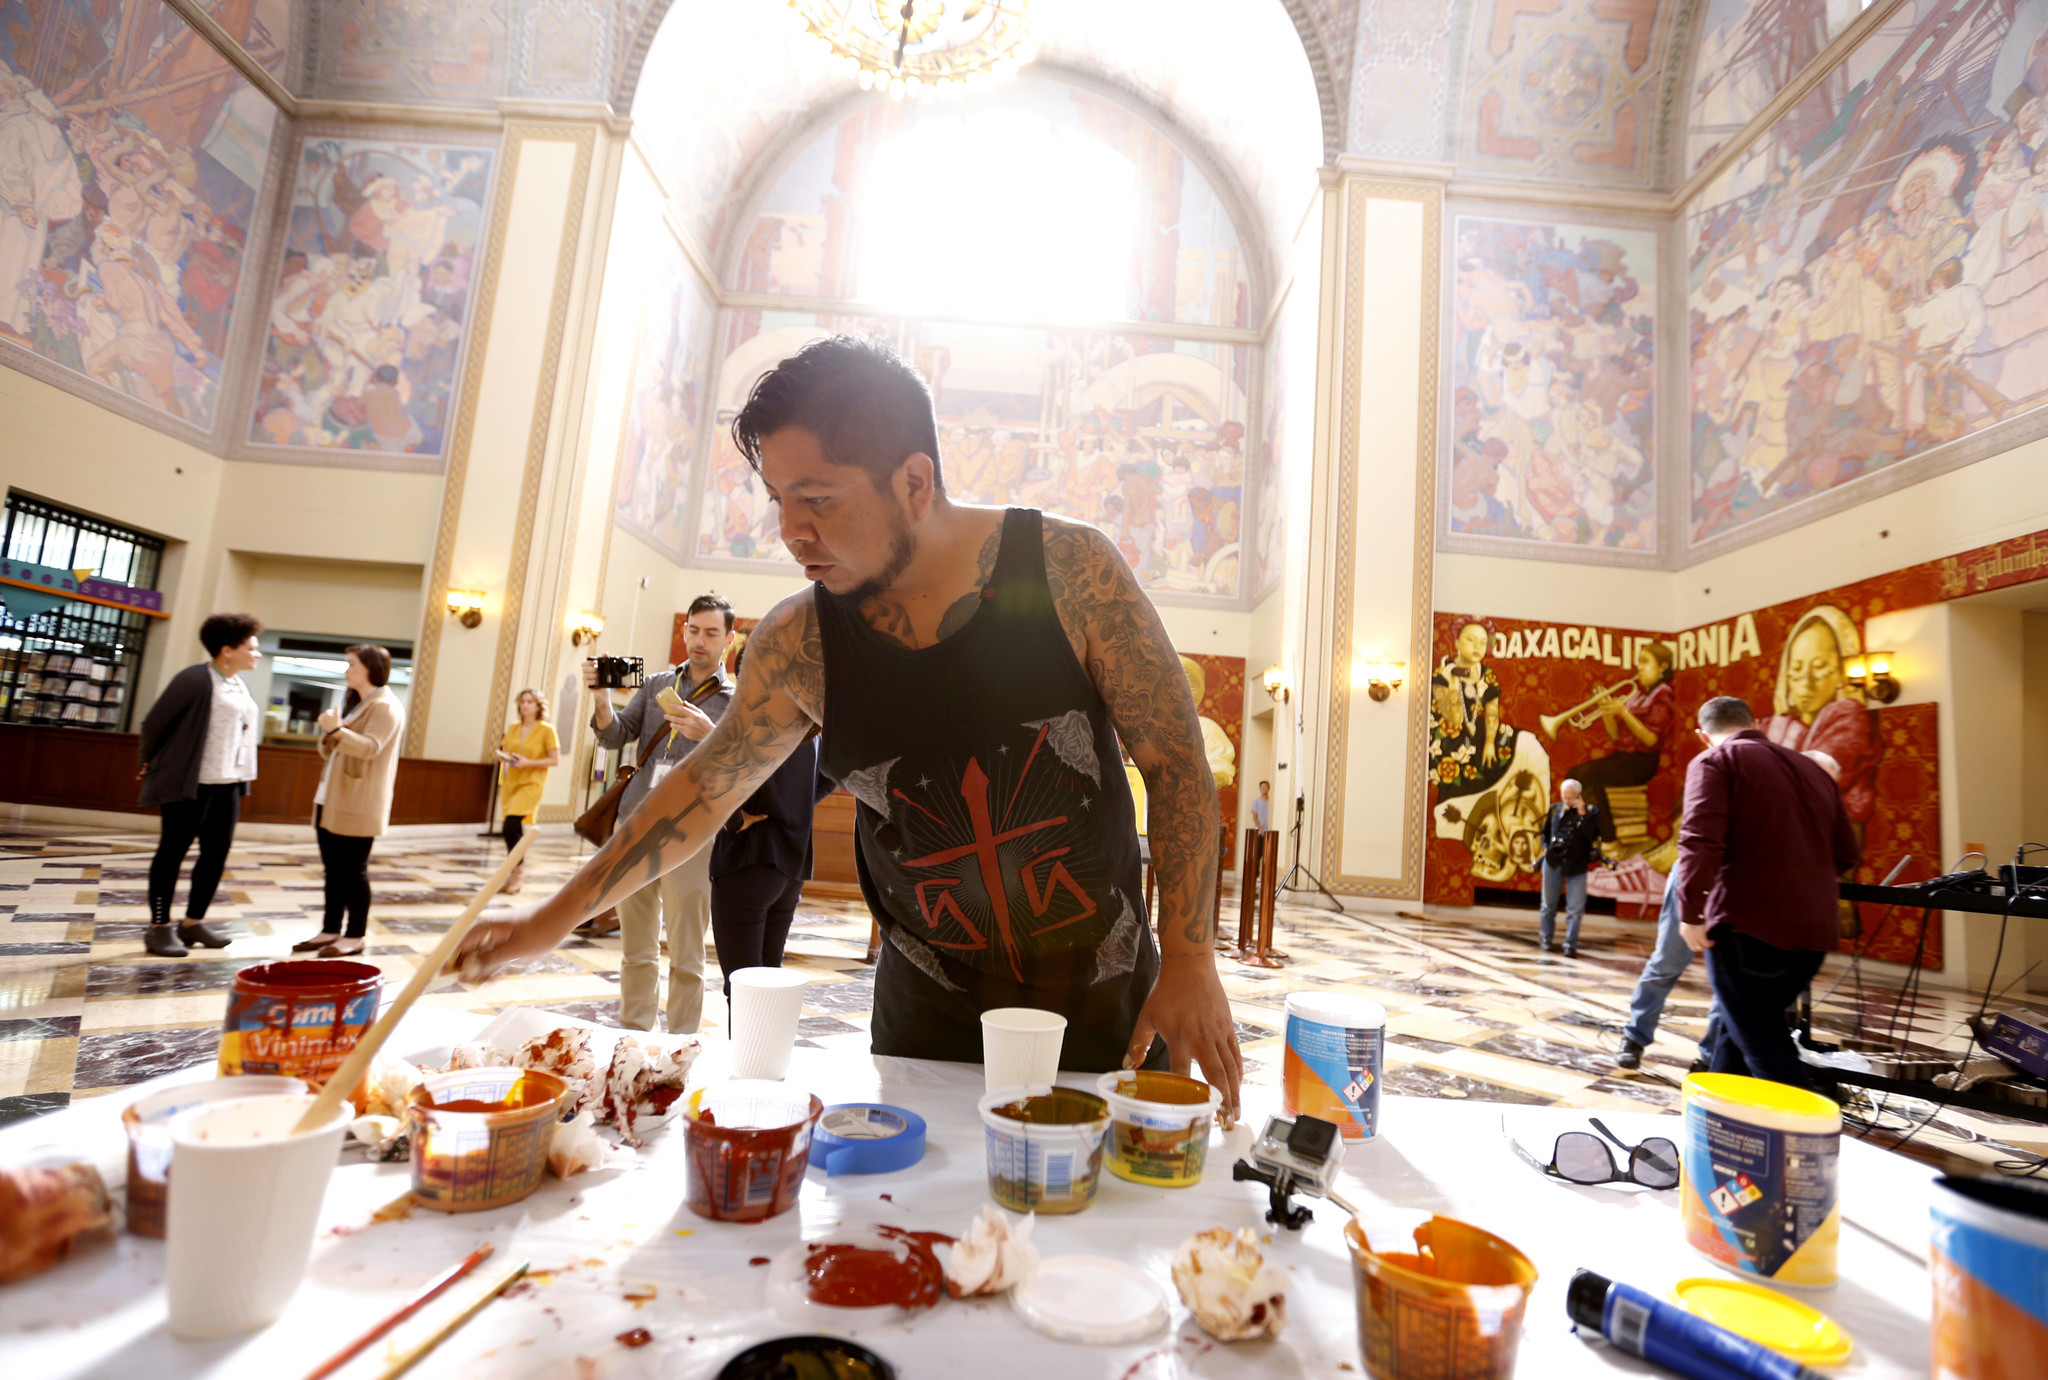 Artist Dario Canul from the Oaxacan collective Tlacolulokos at work in the Central Library.